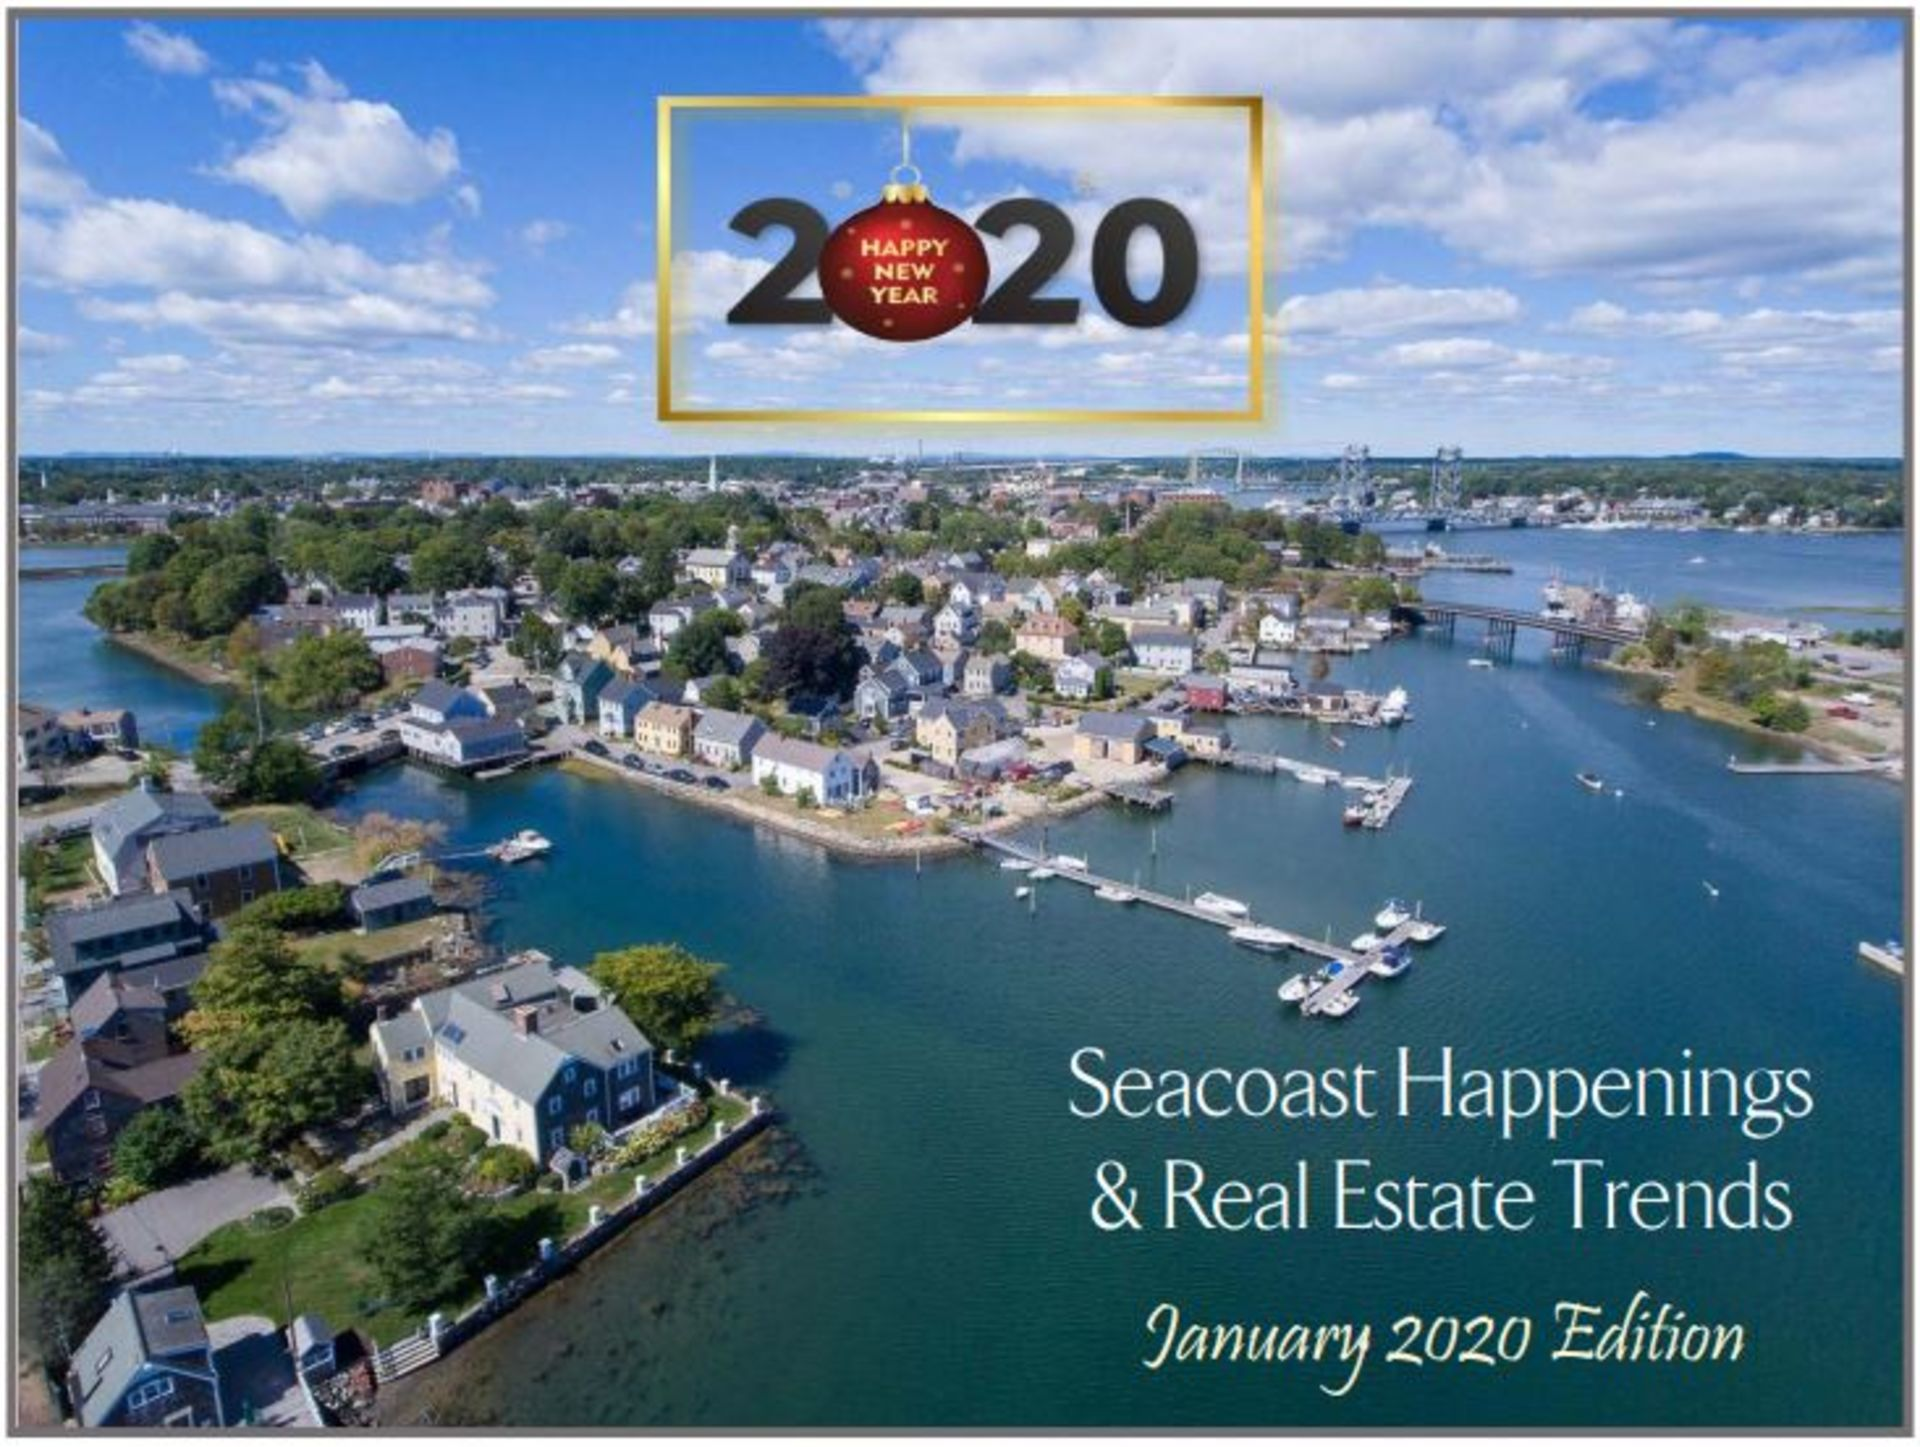 seacoast happenings in january